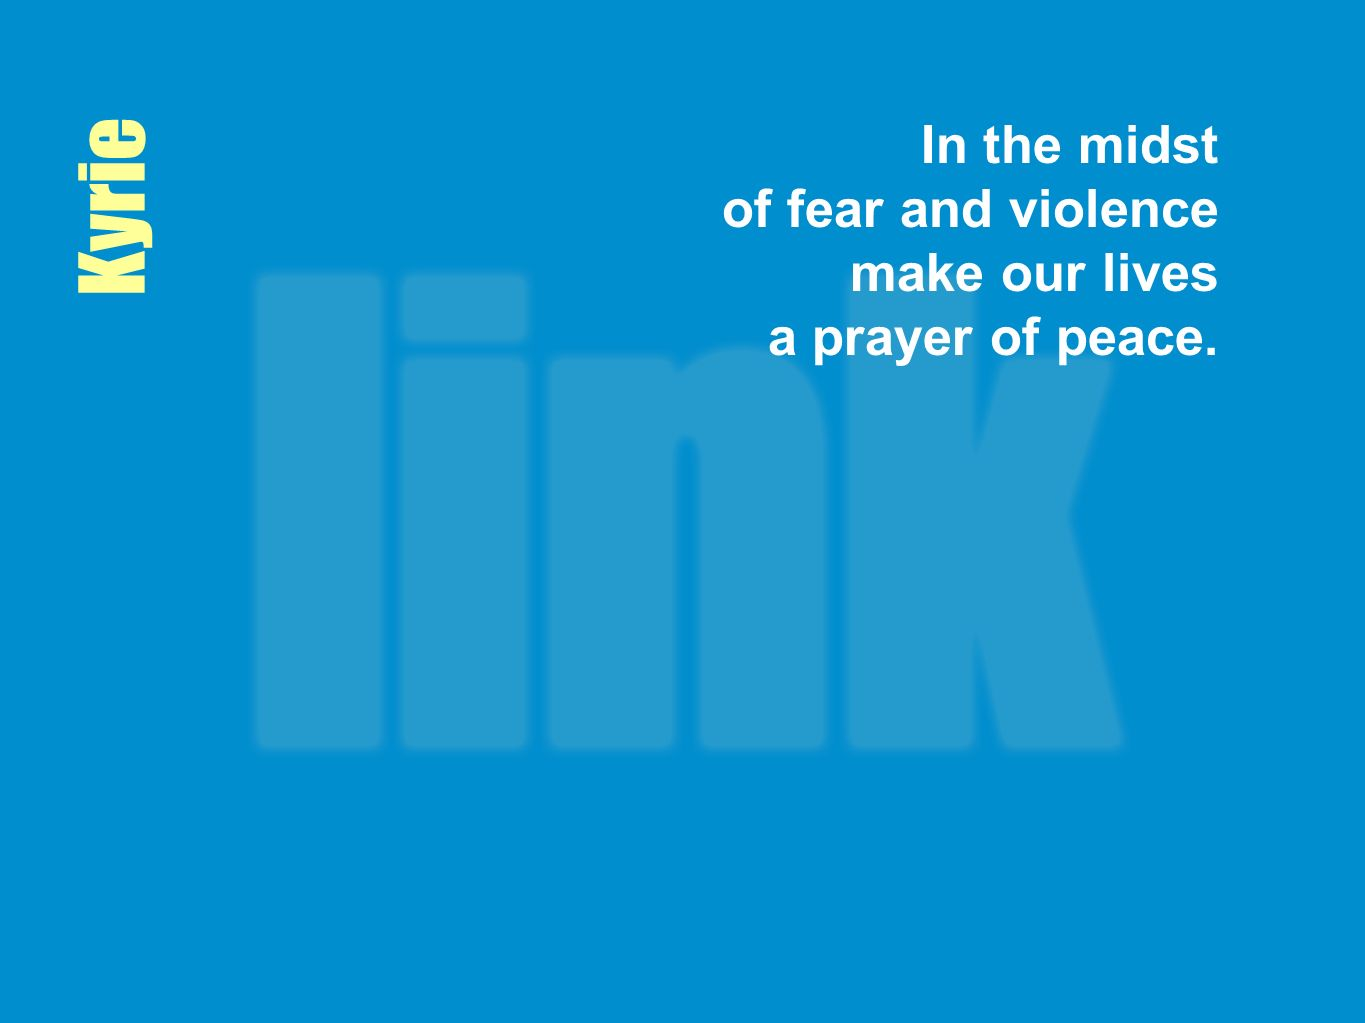 In the midst of fear and violence make our lives a prayer of peace.